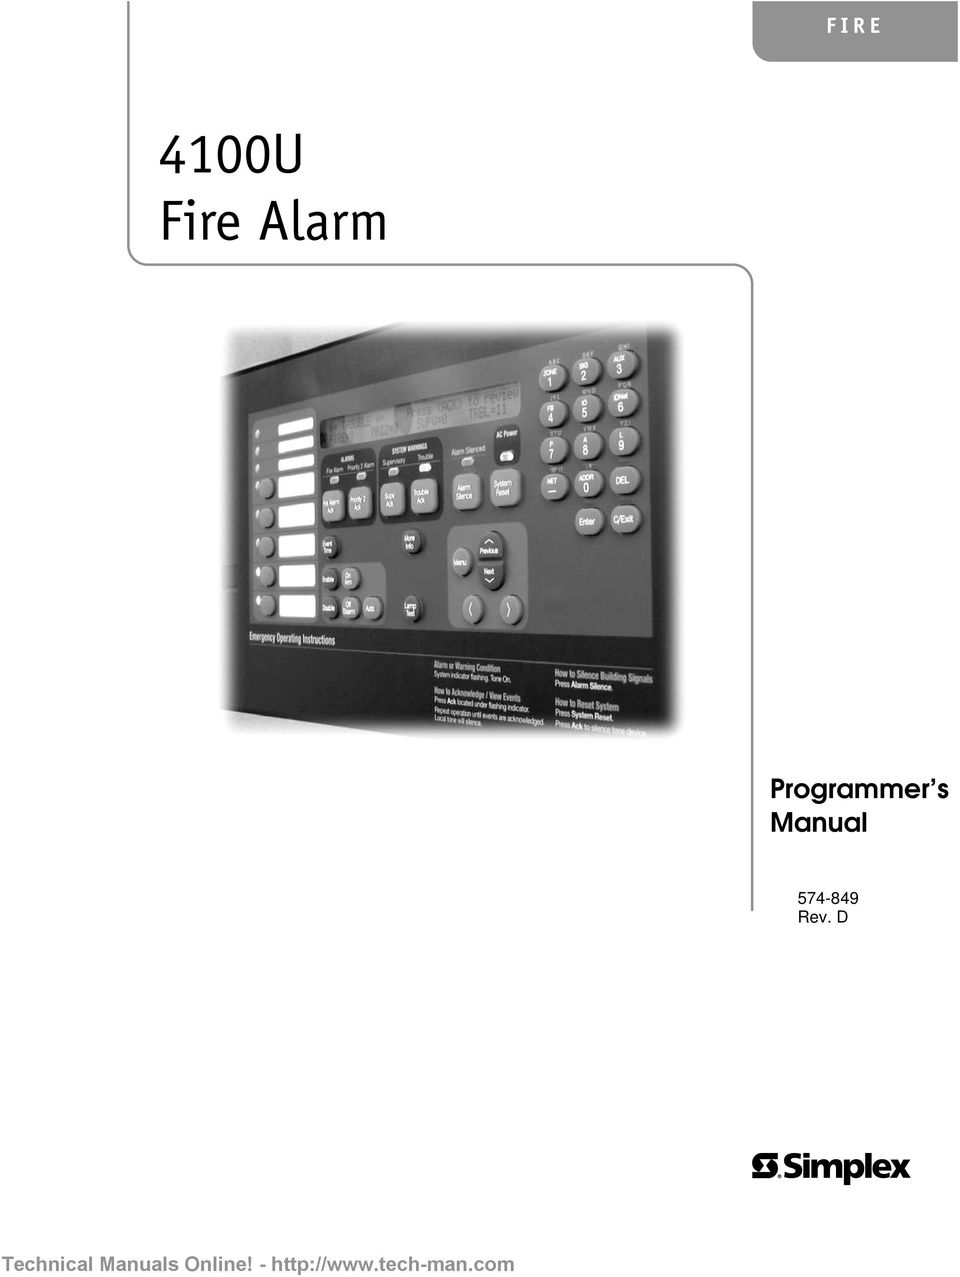 Tech Manuals Online Block Diagram Okifax50505300 Array Fire 4100u Alarm Programmer S Operator U0027s Manual Rev D Rh Docplayer Net